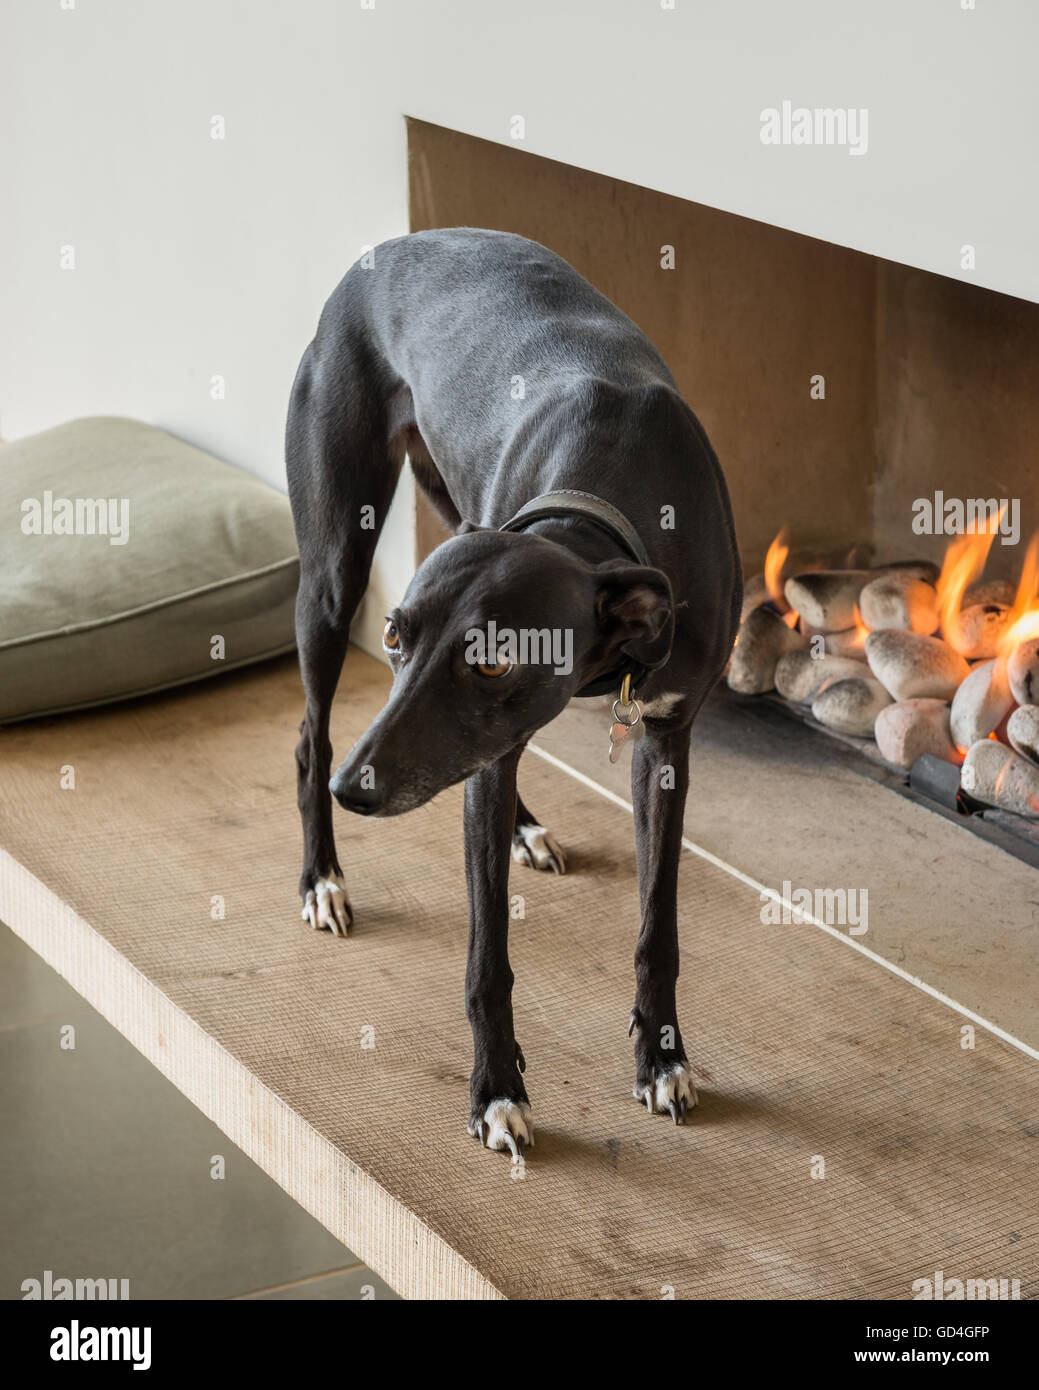 Whippet stands at lit fireside - Stock Image